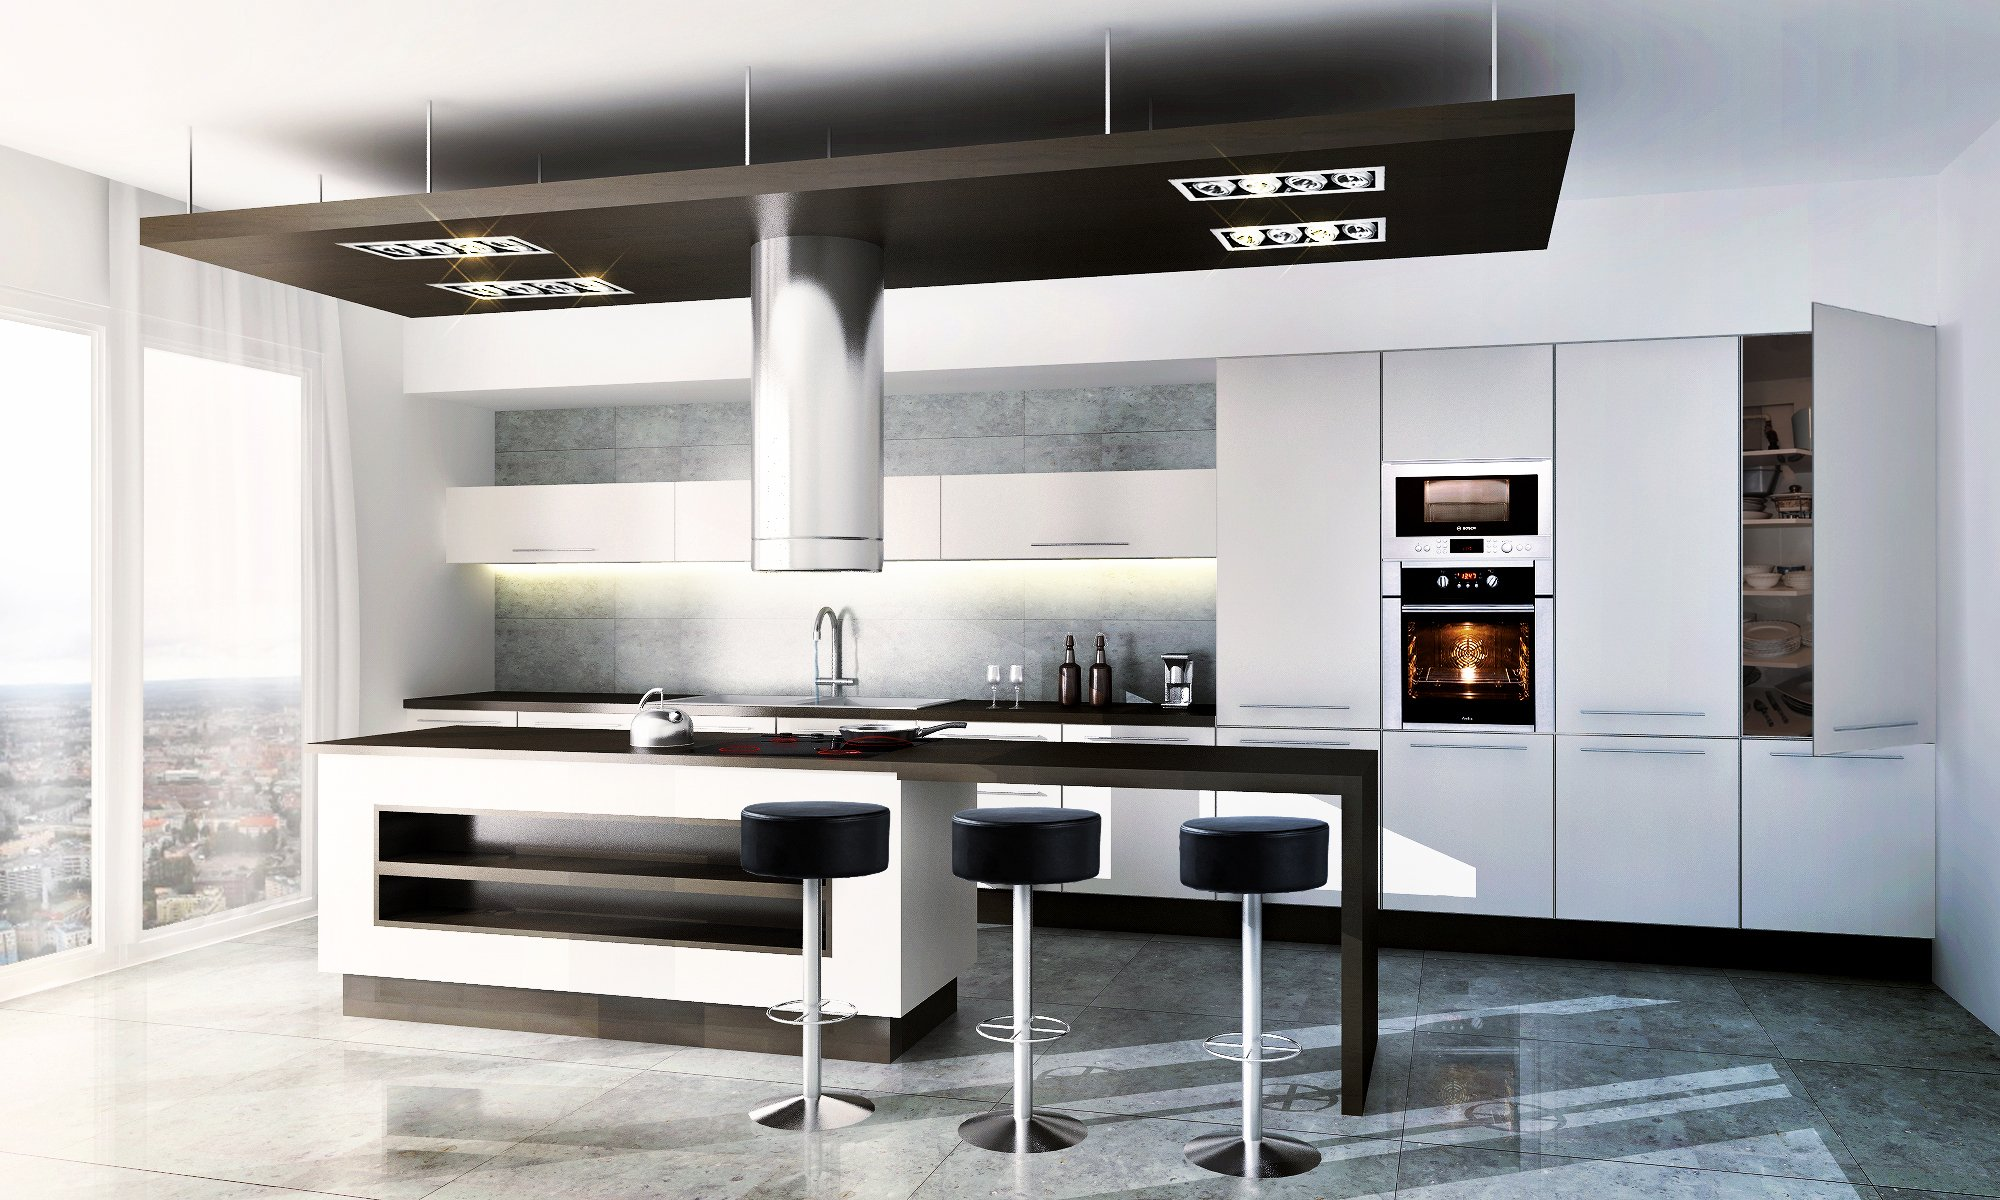 Modern Kitchen 3d Model modern kitchen - vizblog - free 3d models - free 3d base